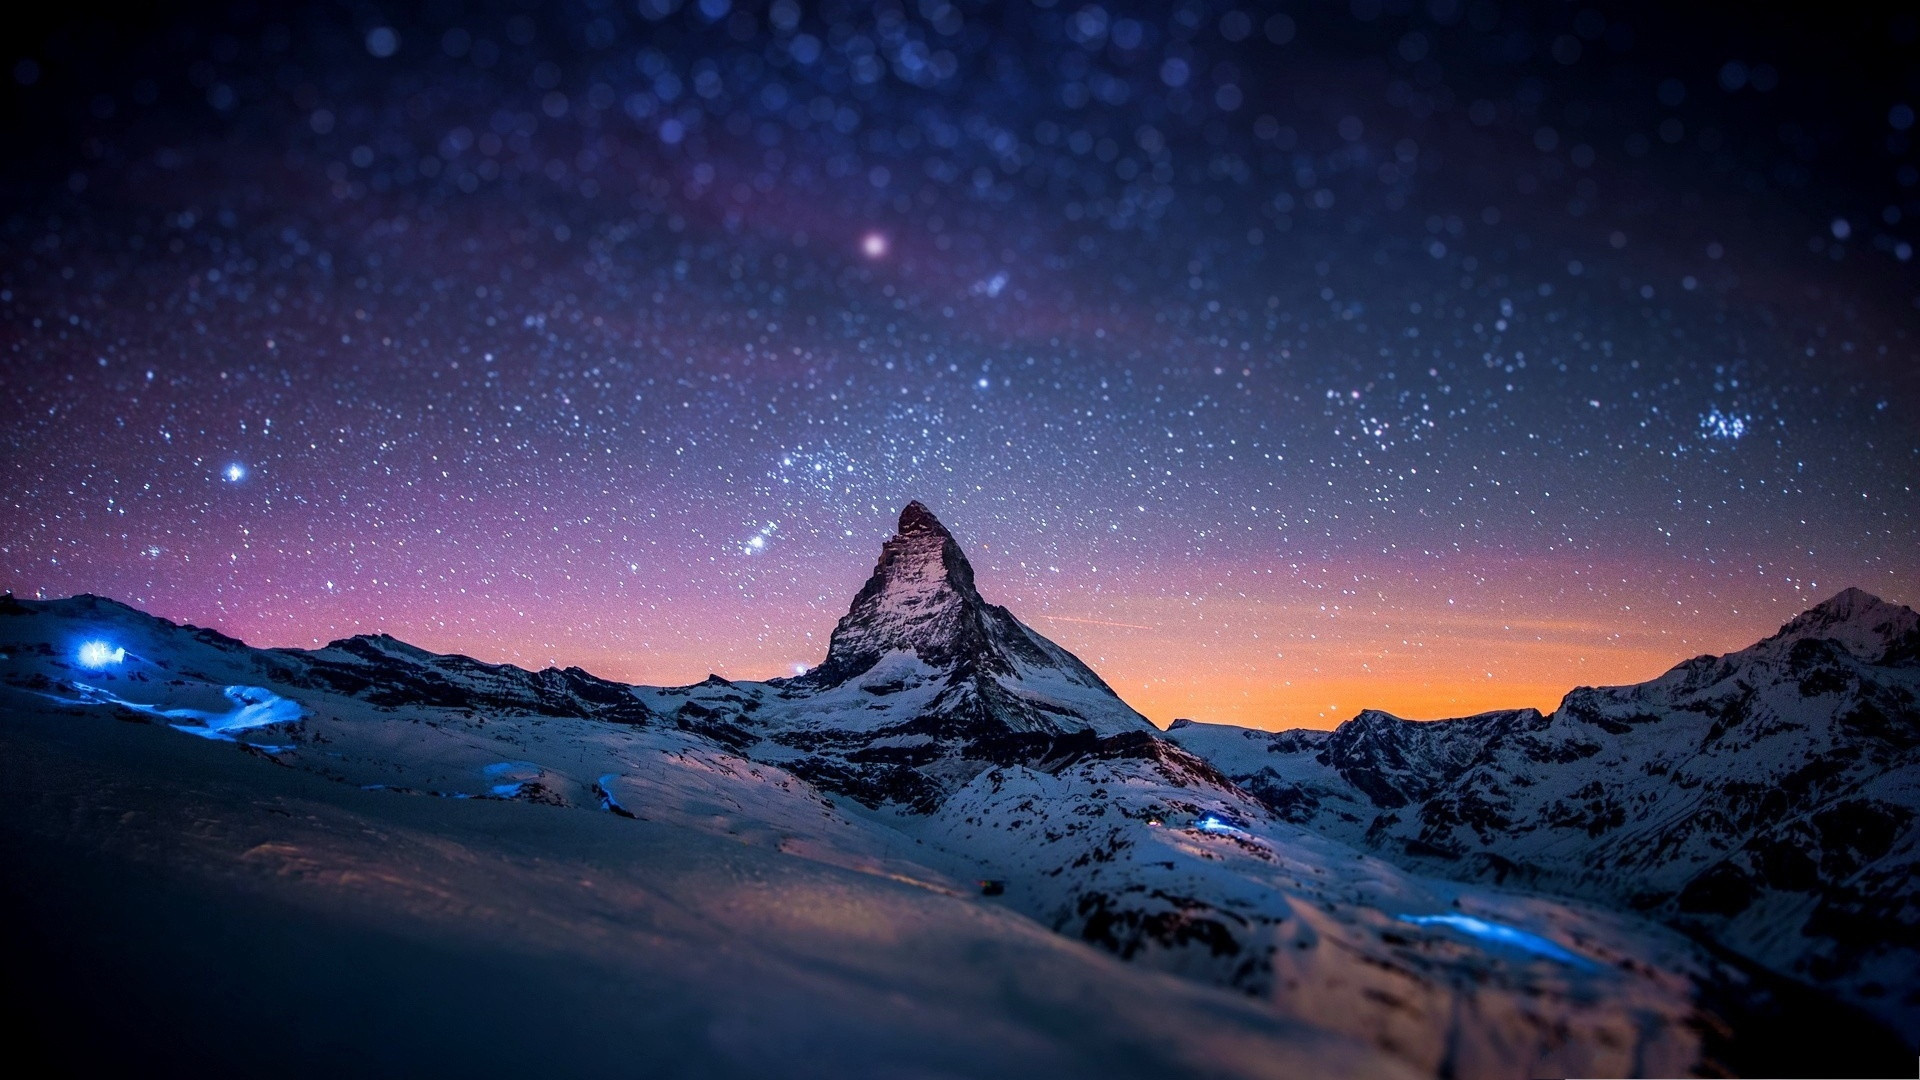 Winter Night Wallpaper 81 Pictures